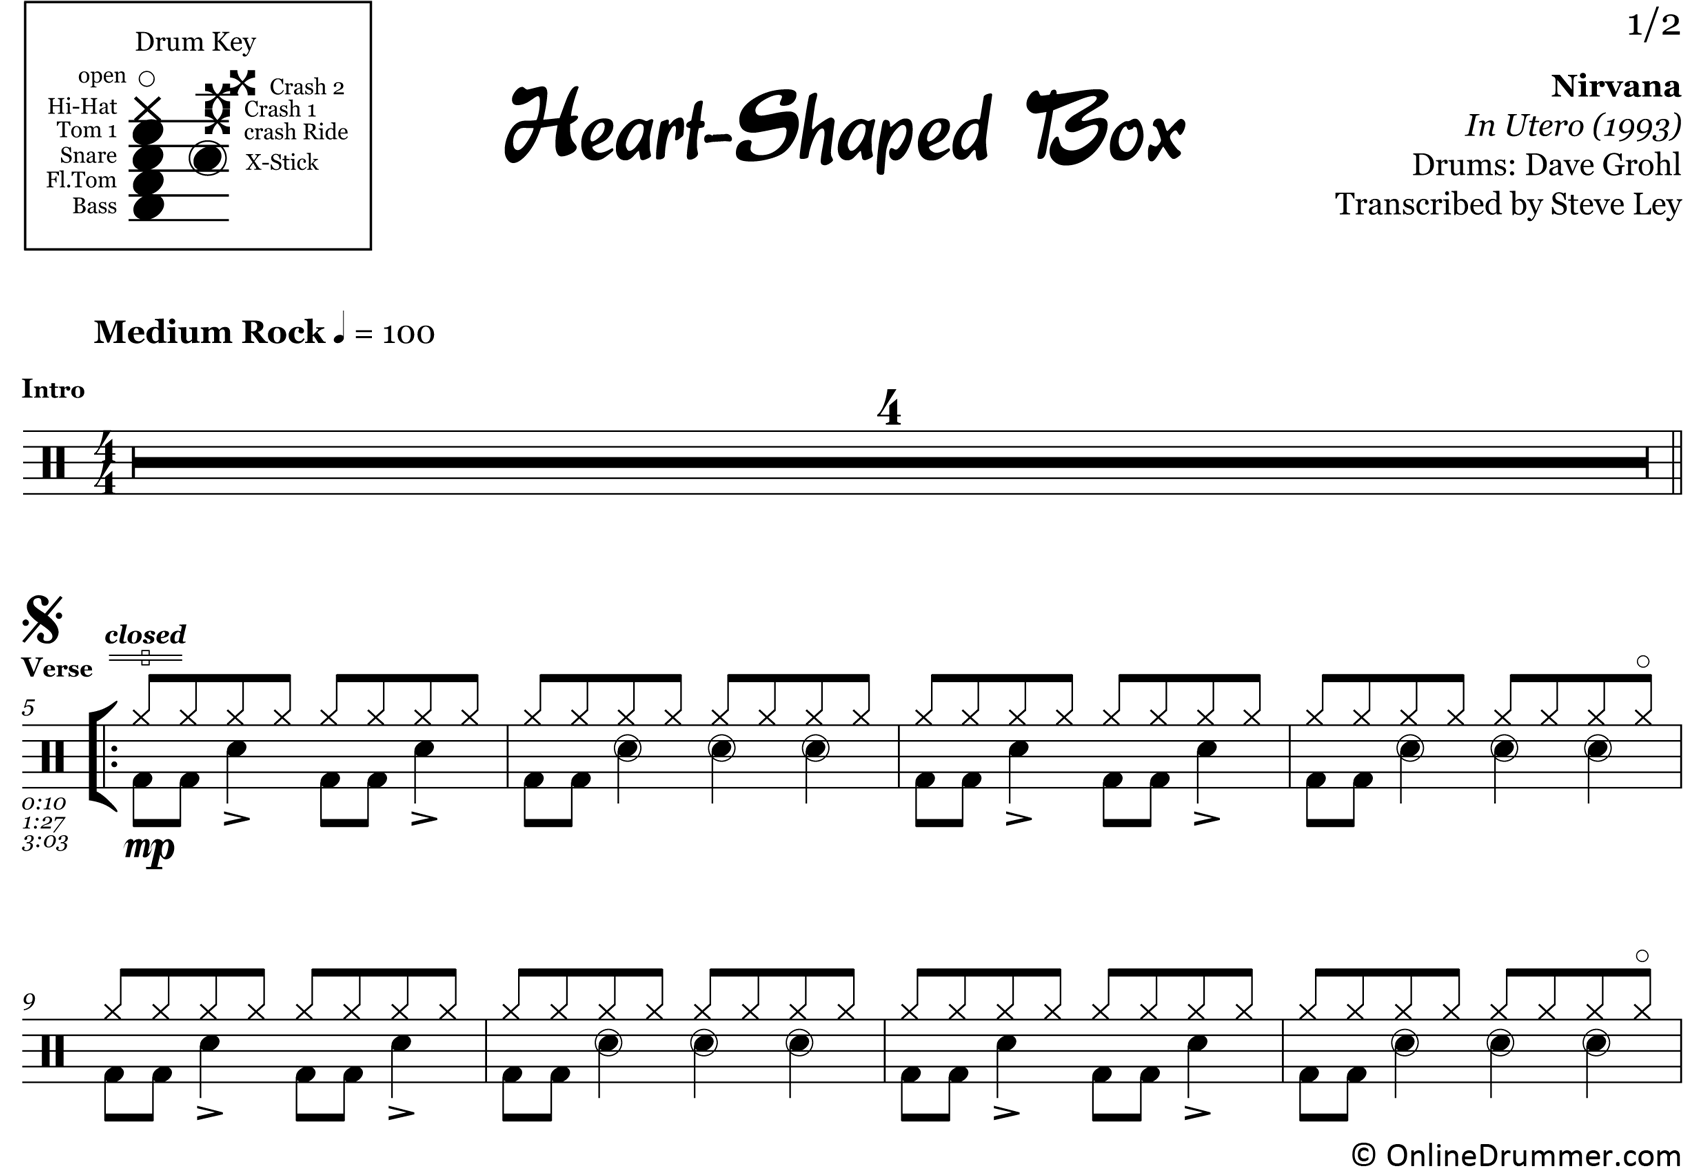 Heart-Shaped Box - Nirvana - Drum Sheet Music